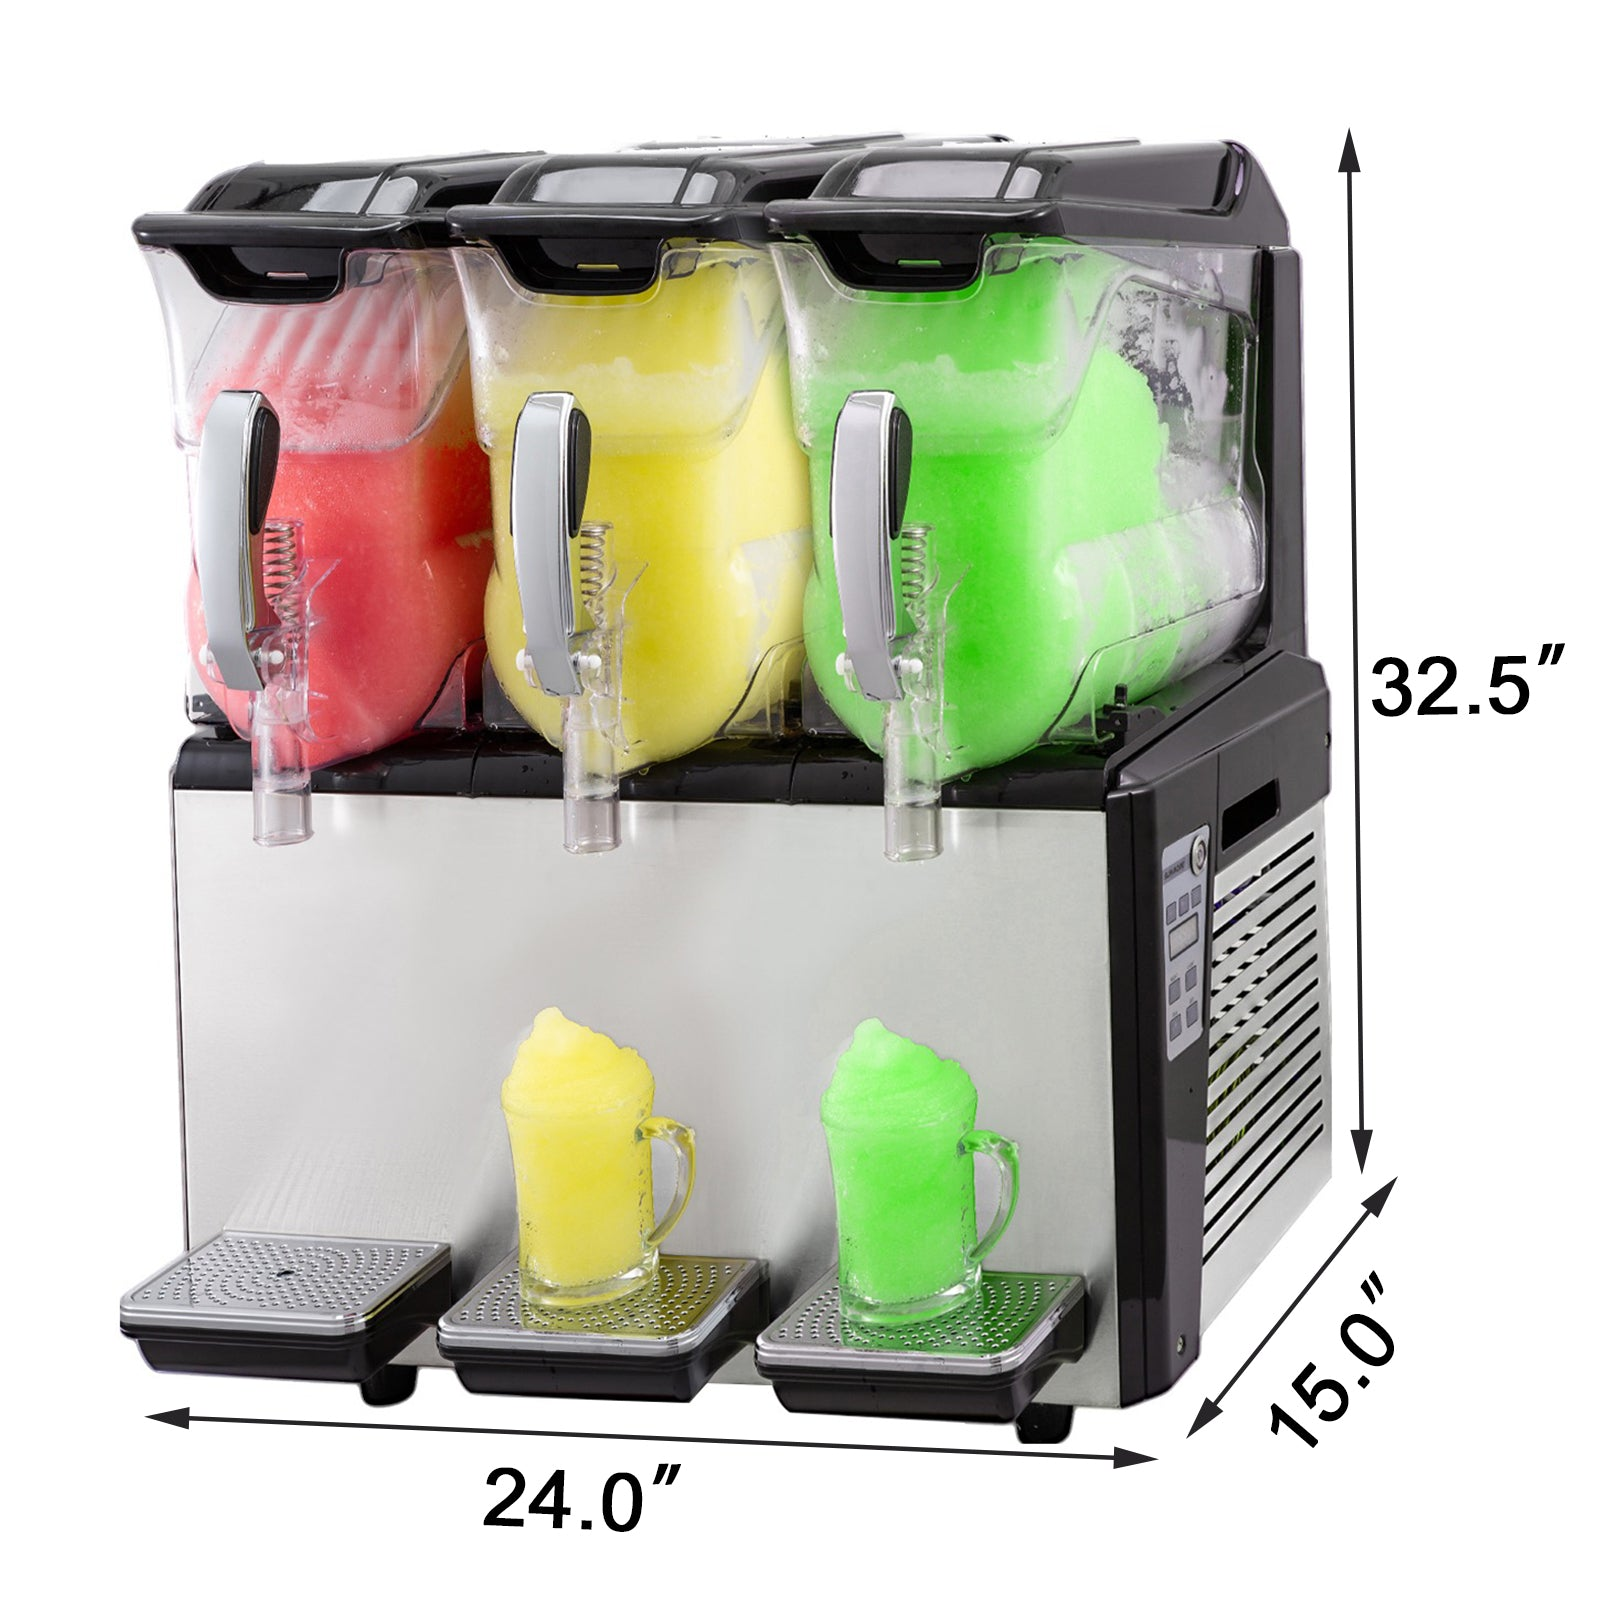 30l Slush Frozen Drink Machine Slushie Single Bowl Mix Drink Ice Maker Beverage